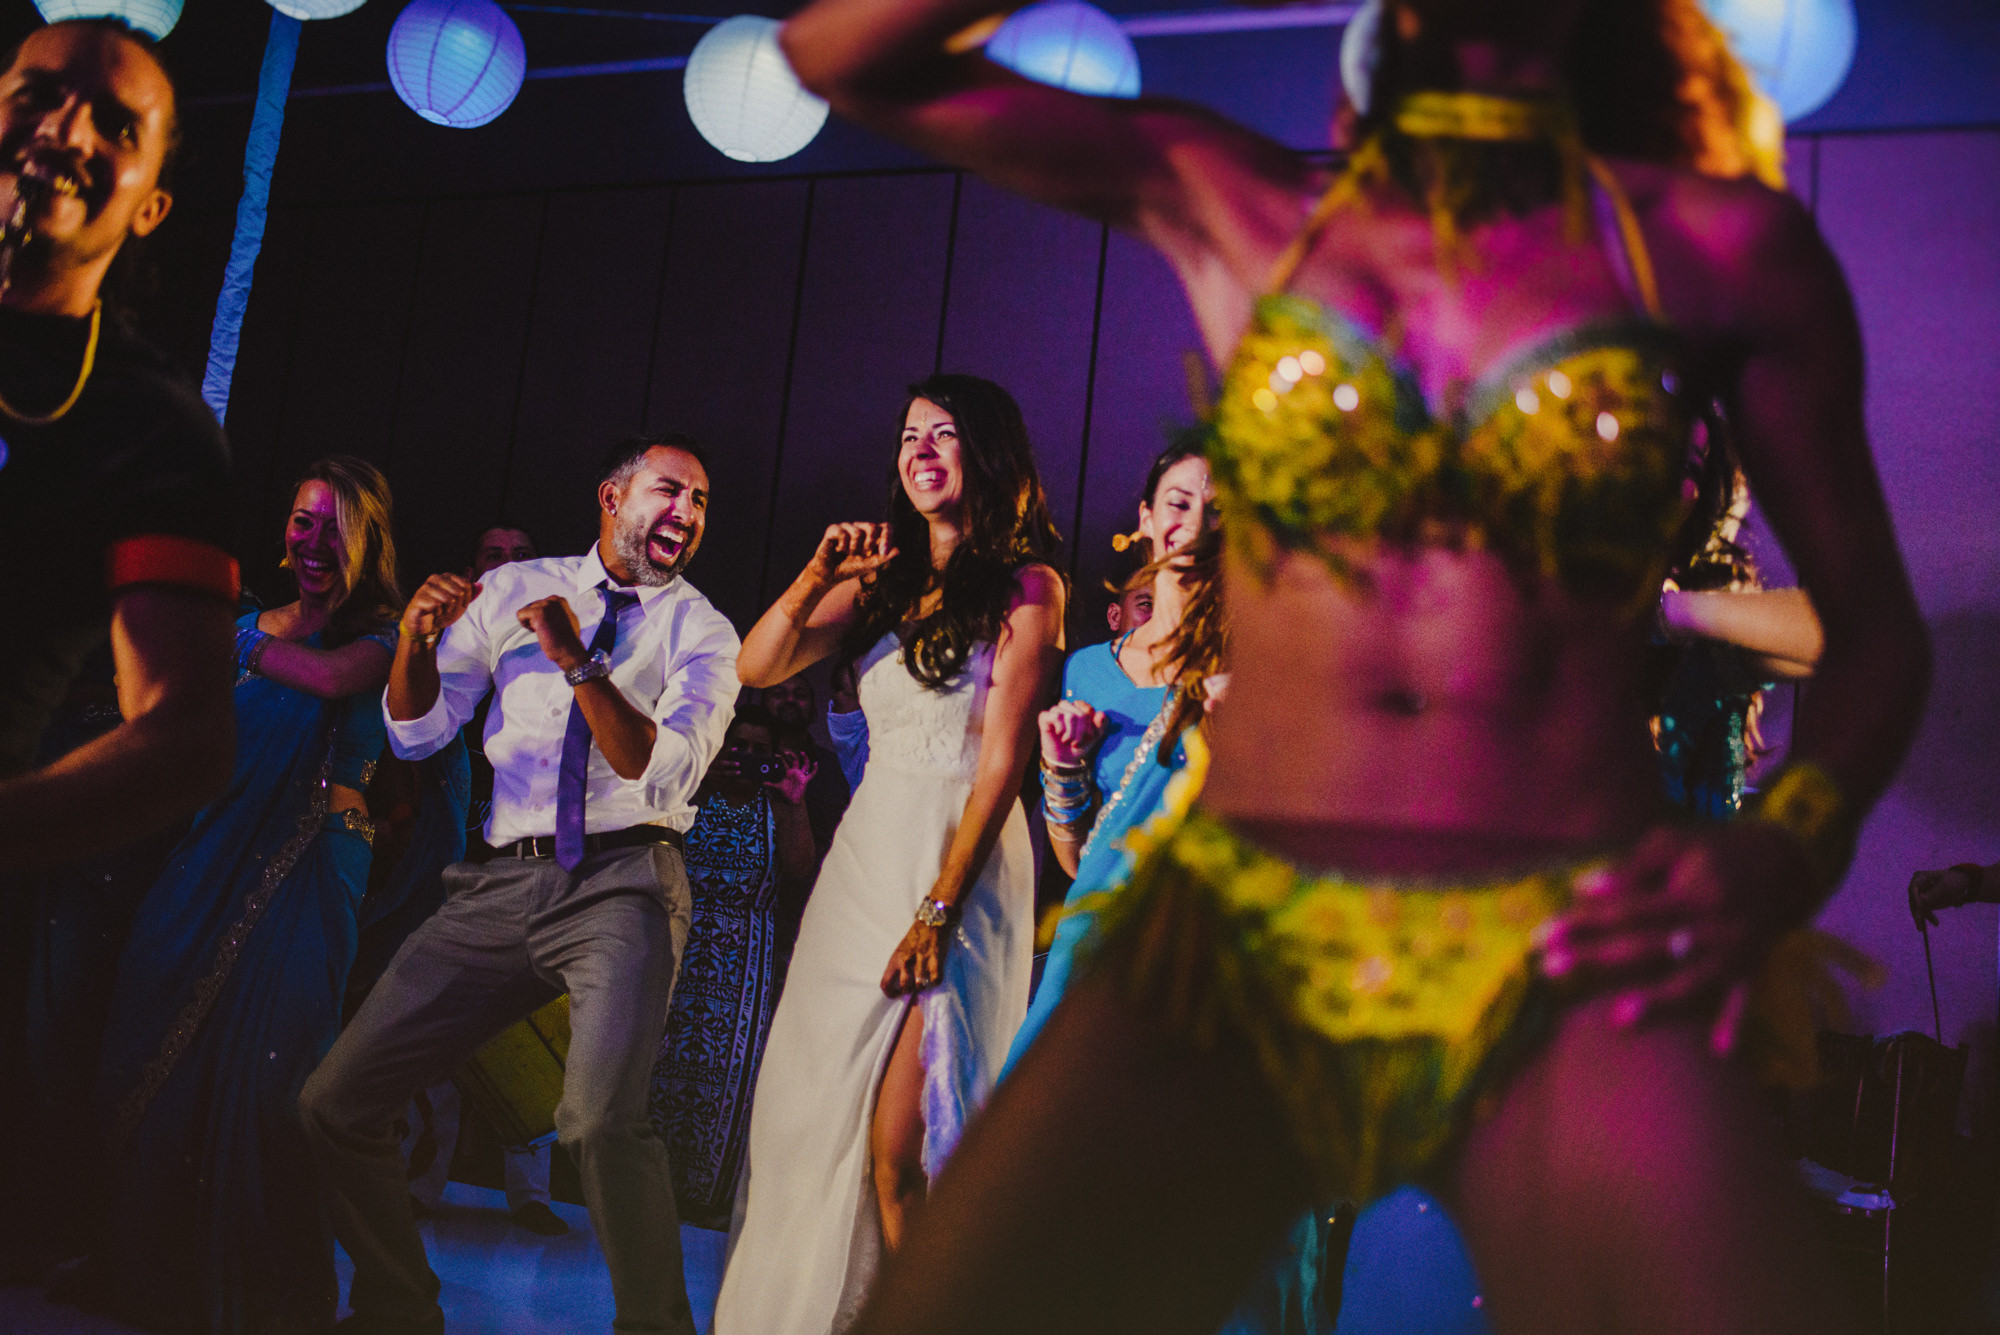 Wedding reception party with carnival dancers - photo by Fer Juaristi